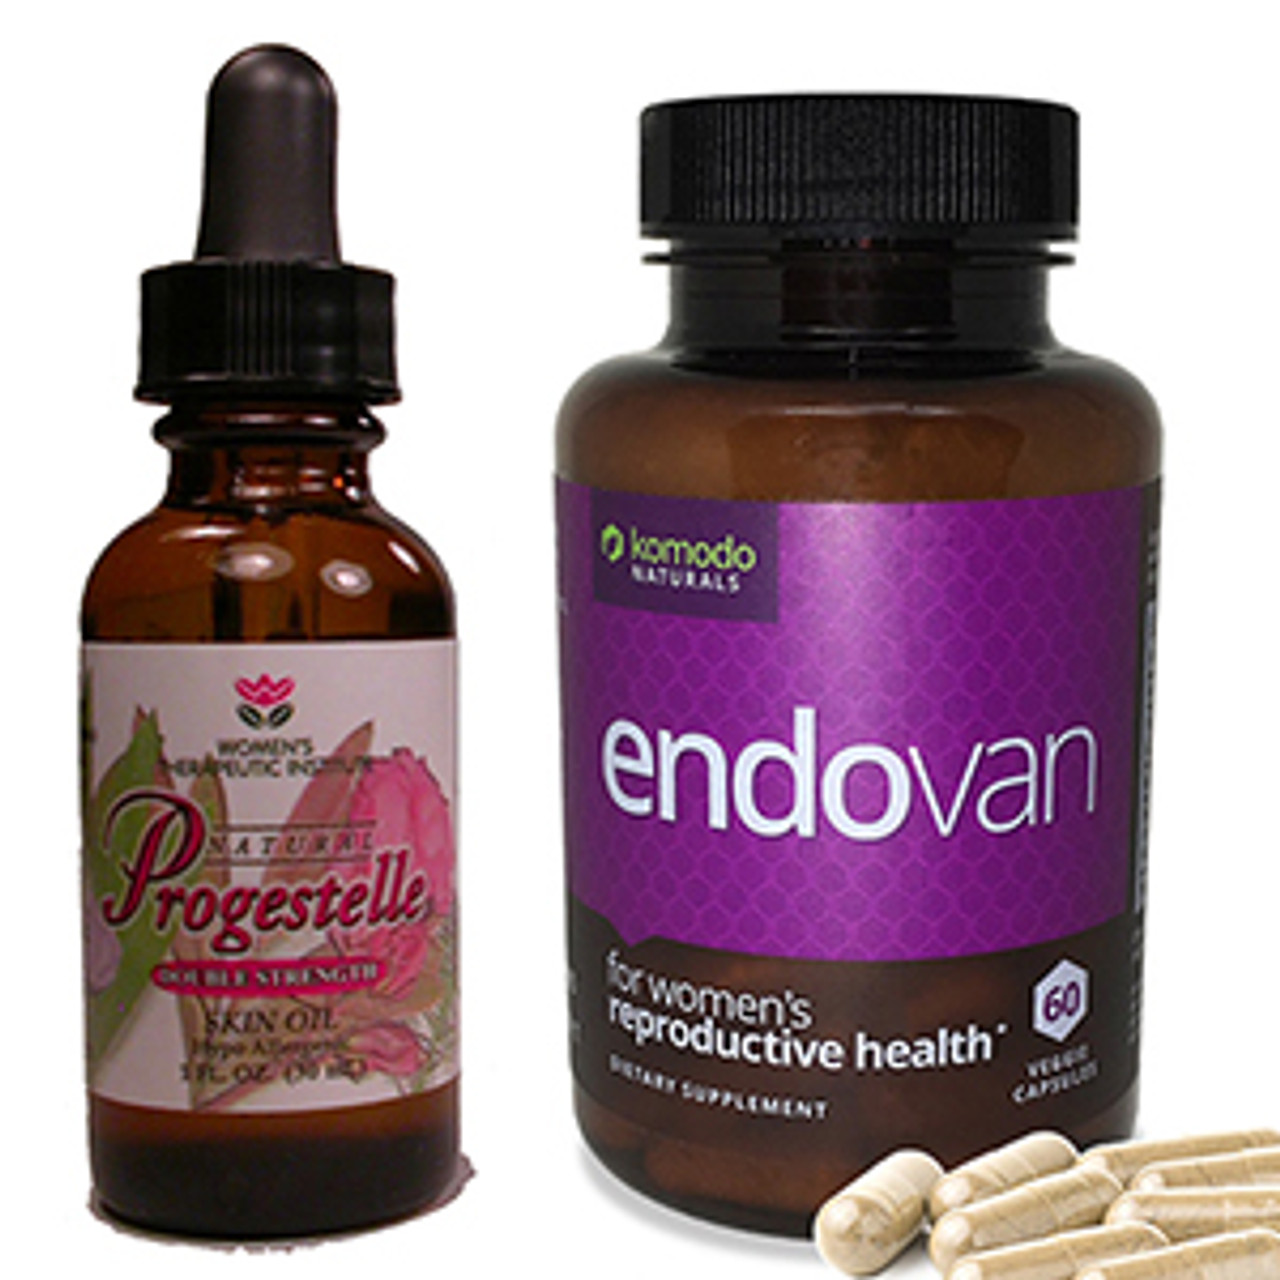 Deluxe ENDO Health Kit (Endovan, Progestelle) - Nattokinase dissolves blood  clots and adhesions